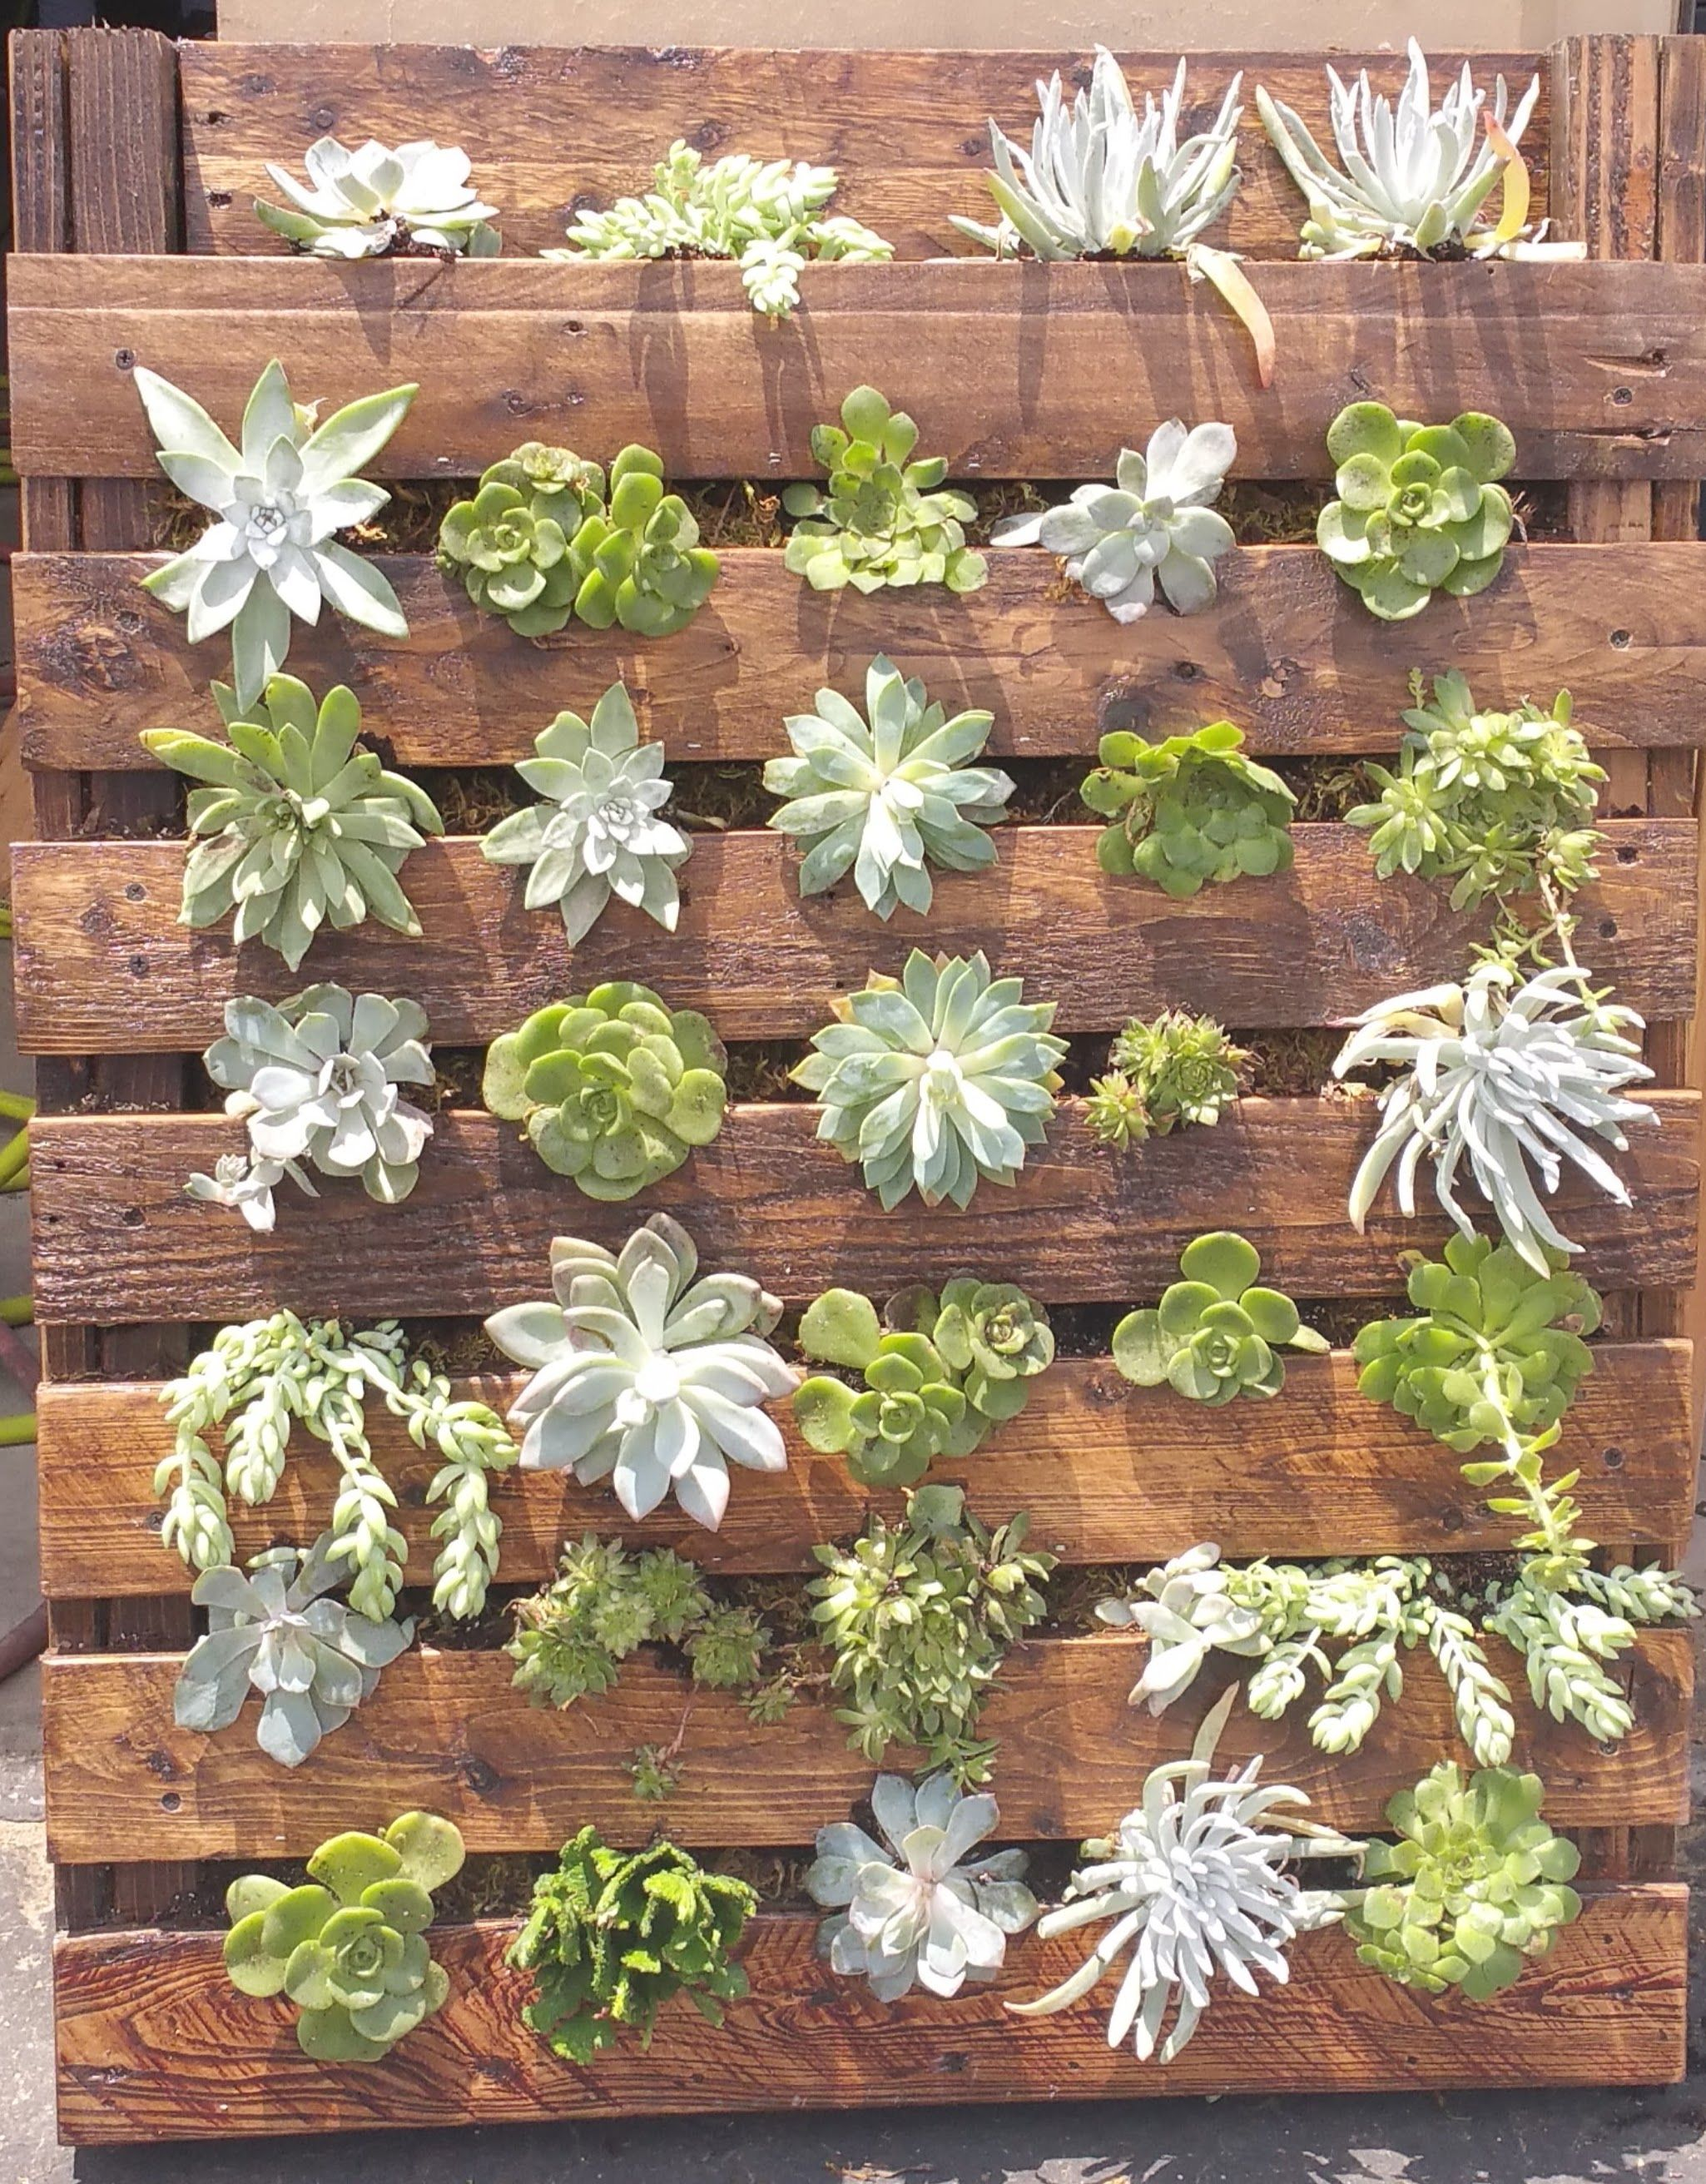 Can you say Vertical Garden? Good, now, how about repurposed pallets ...